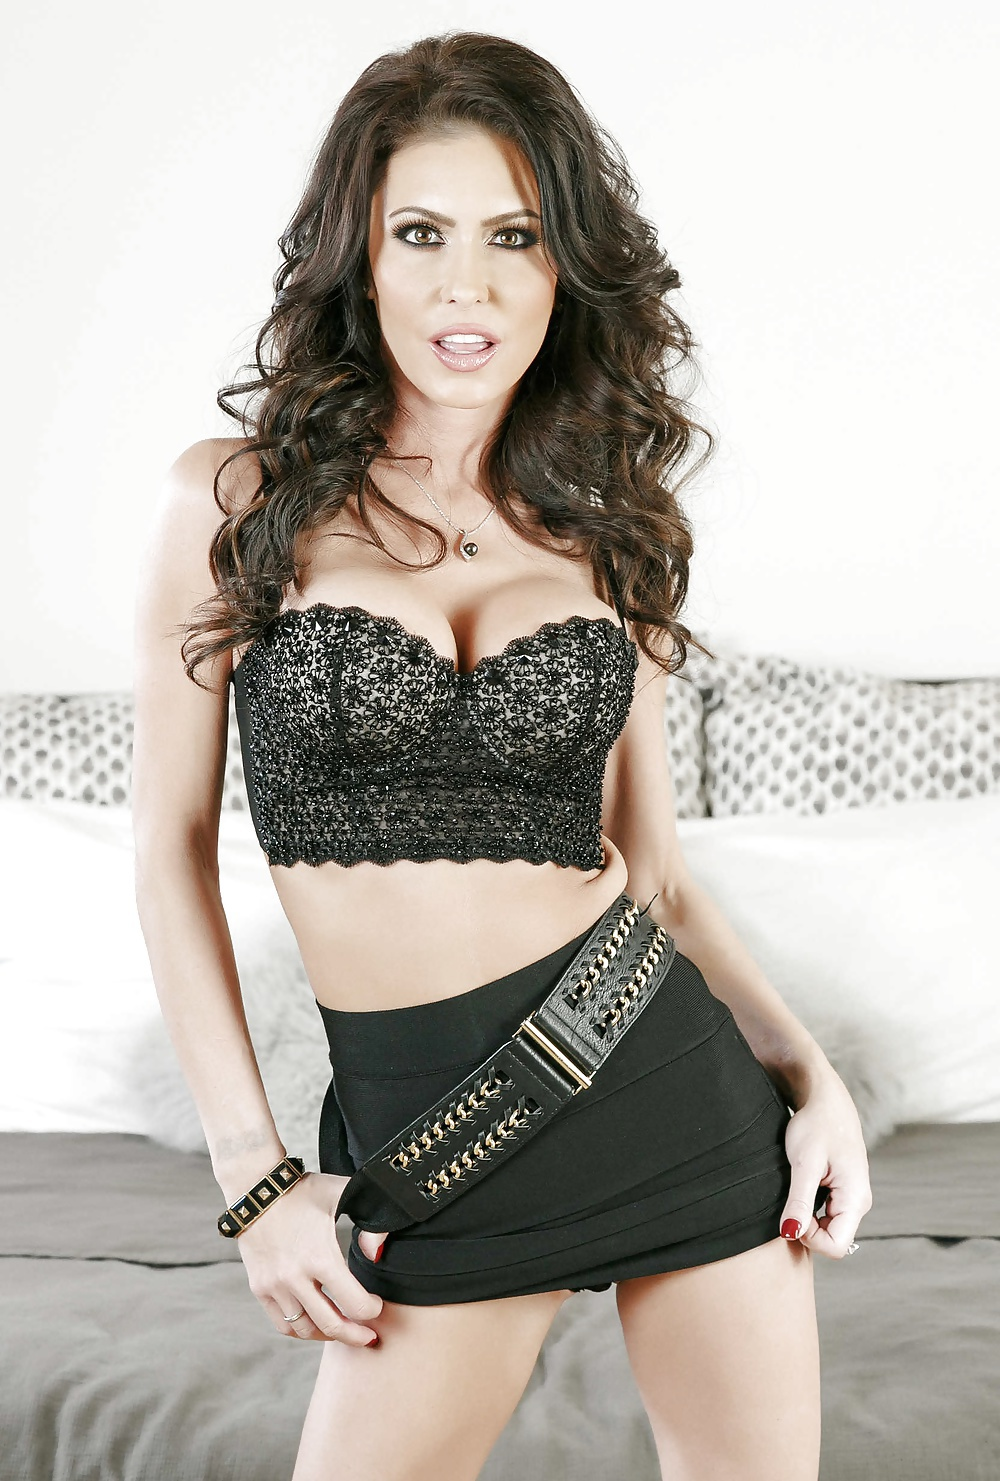 Jessica Jaymes Iphone Sexy Wallpapers